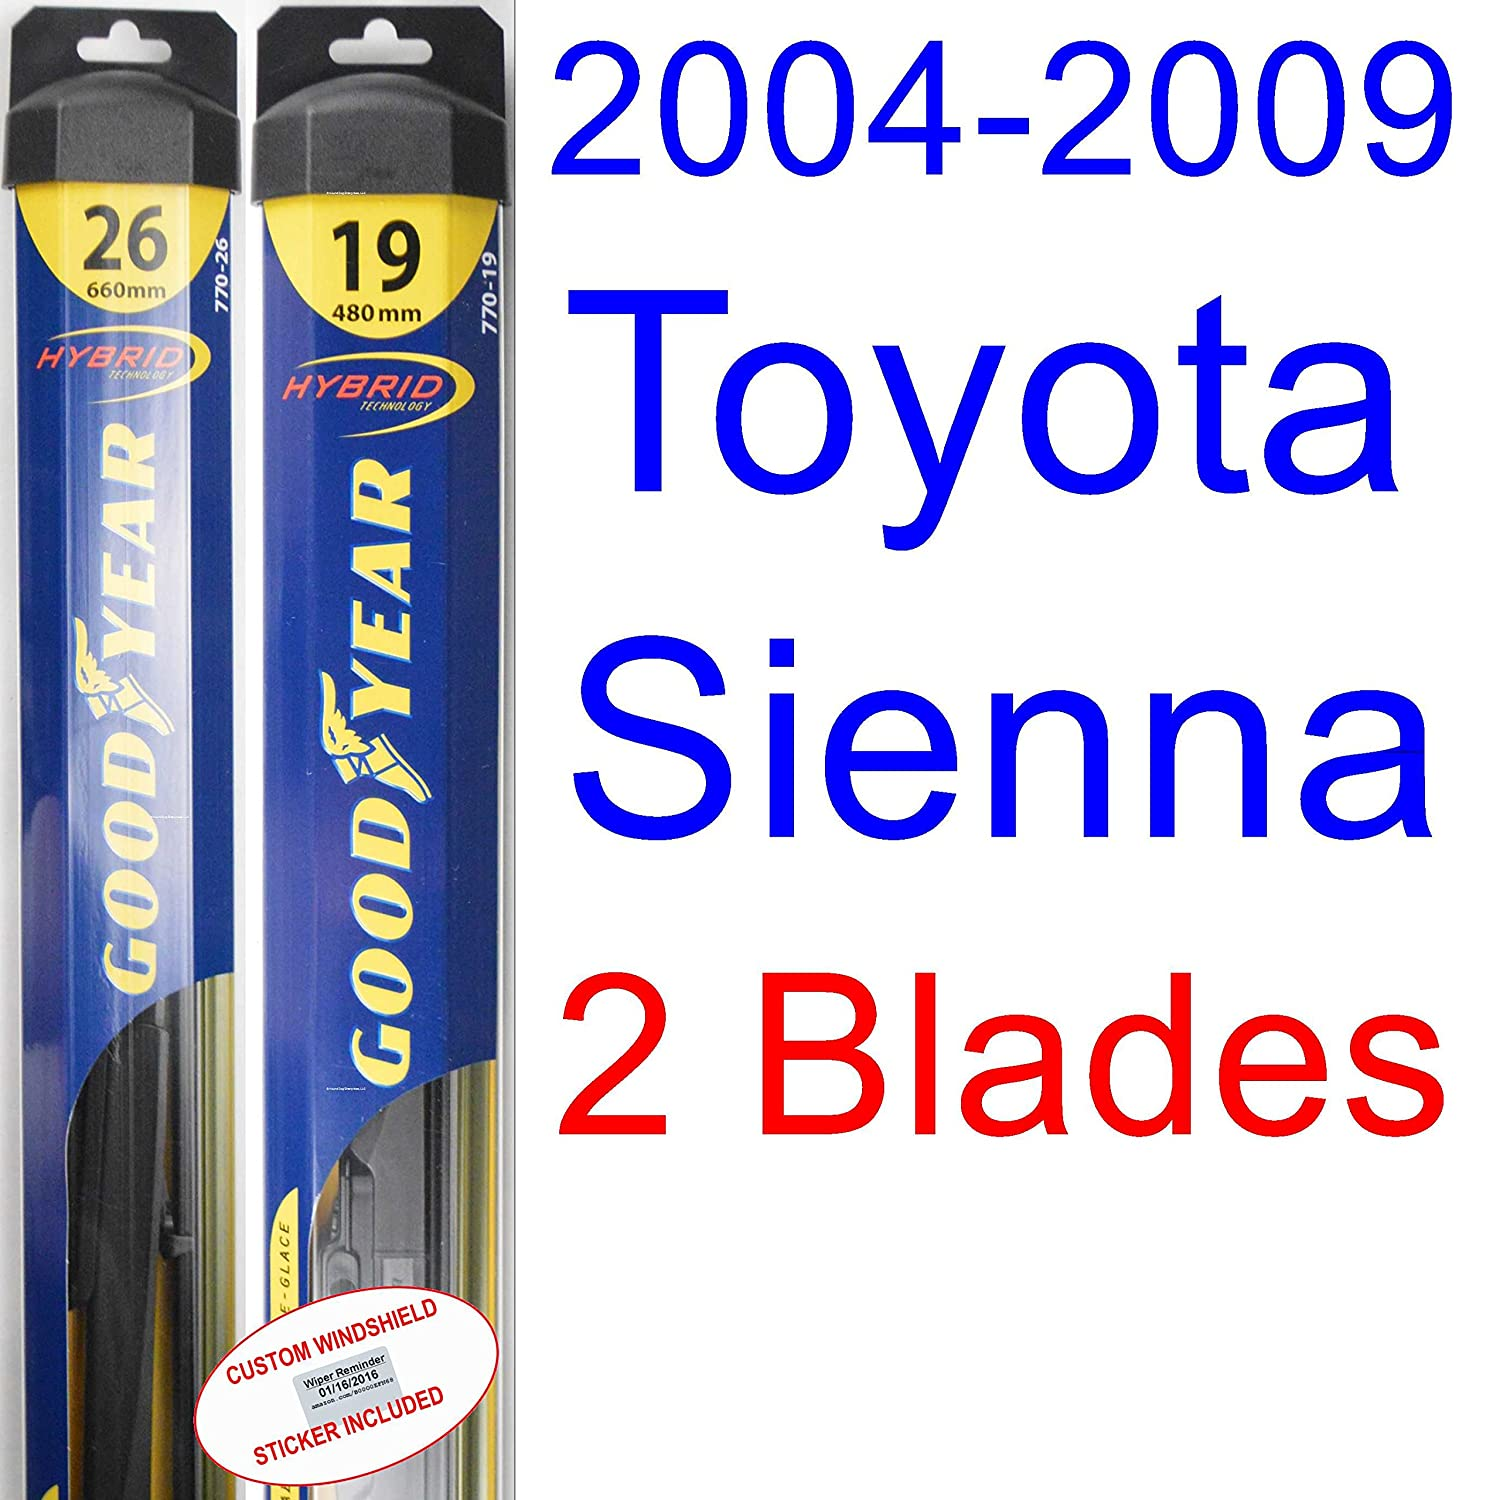 Amazon.com: 2004-2009 Toyota Sienna Replacement Wiper Blade Set/Kit (Set of 2 Blades) (Goodyear Wiper Blades-Hybrid) (2005,2006,2007,2008): Automotive